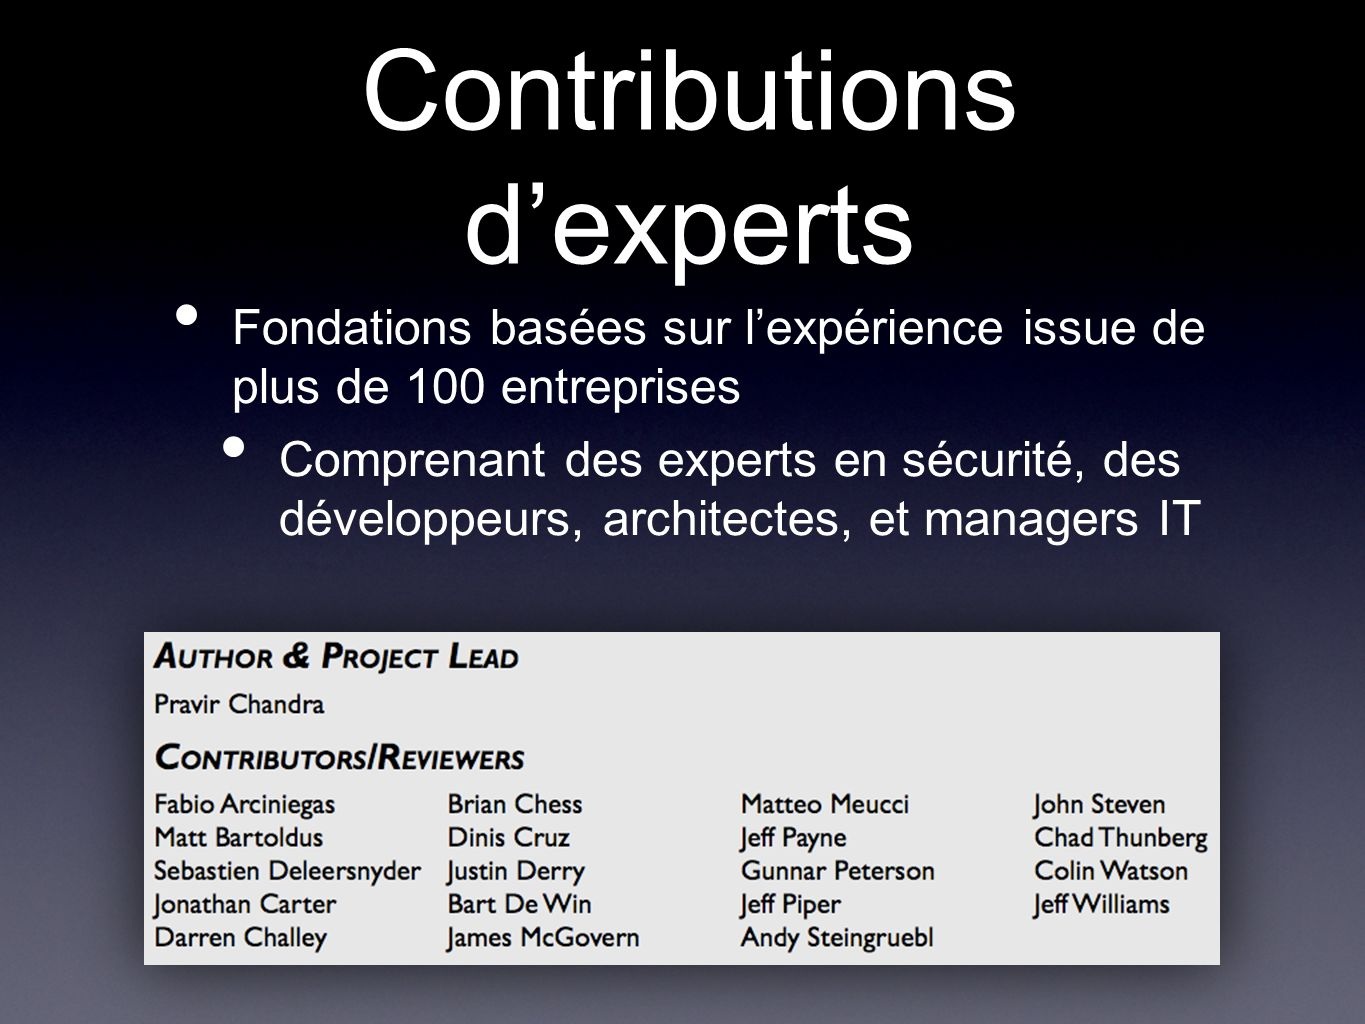 Contributions d'experts